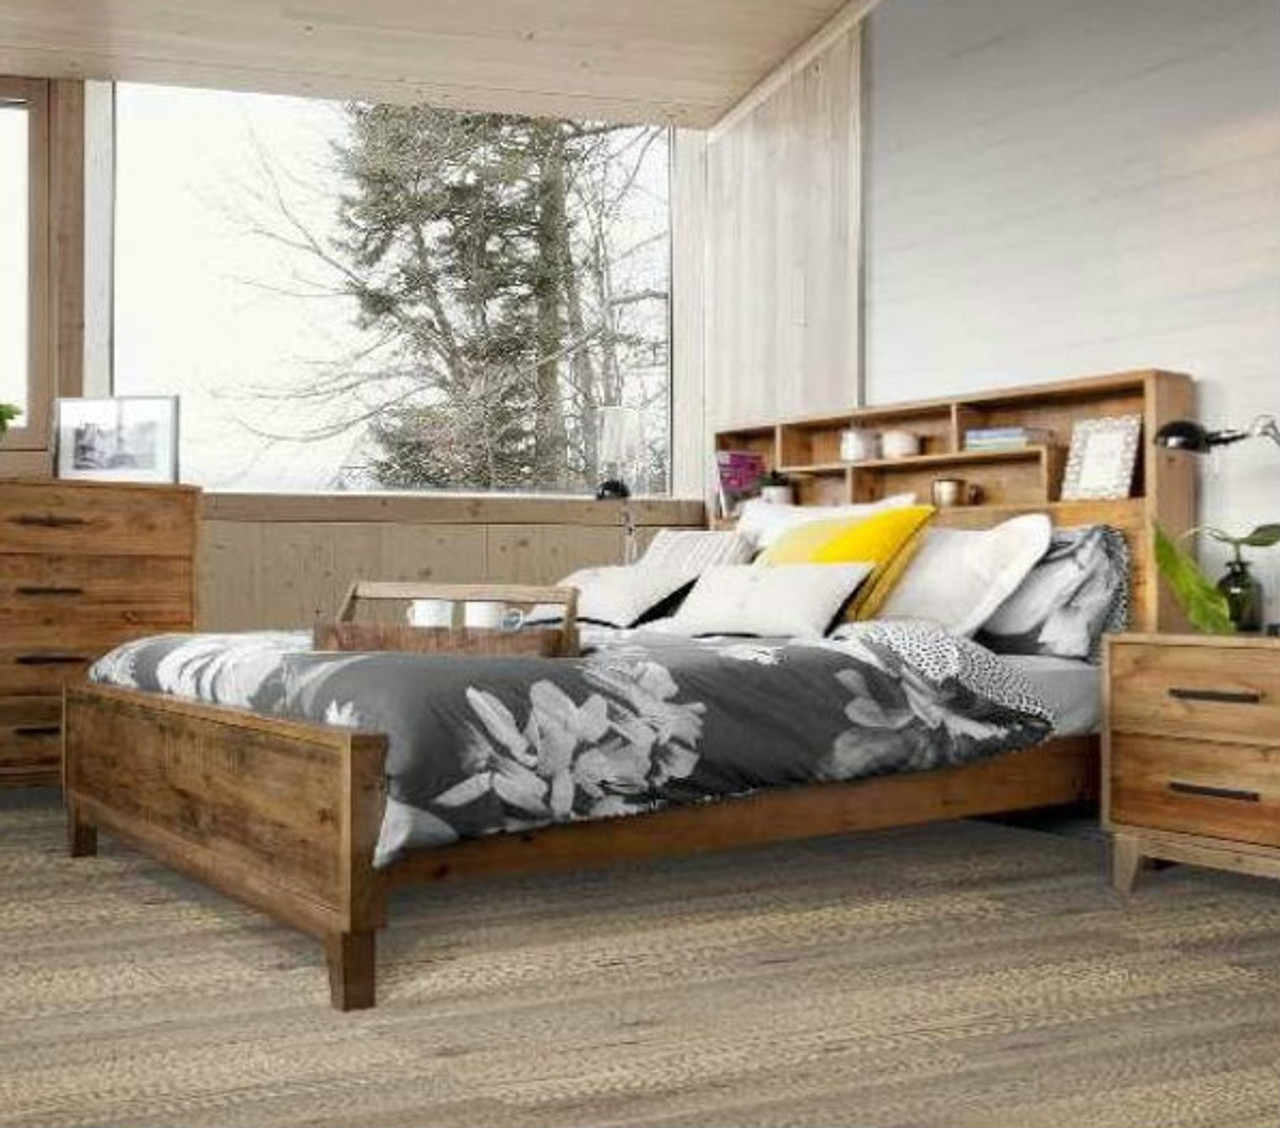 Picture of: Queen Antarctica Bed With Bookcase Storage Headboard Rustic My Furniture Store Furniture And Bedding Super Store Australia